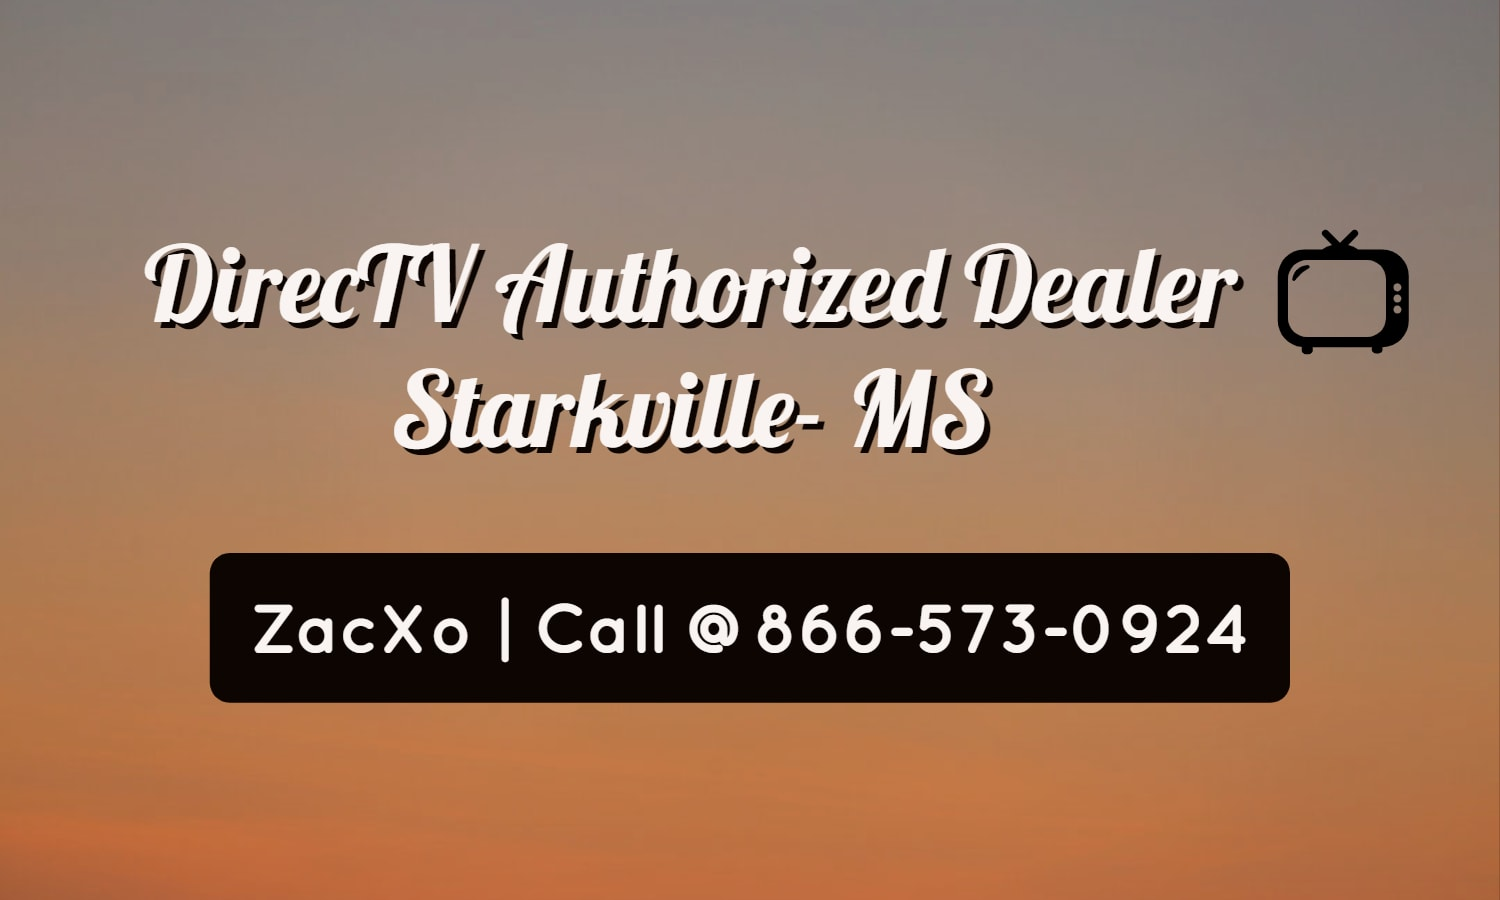 directv authorized dealer starkville mississippi zacxo llc. Black Bedroom Furniture Sets. Home Design Ideas